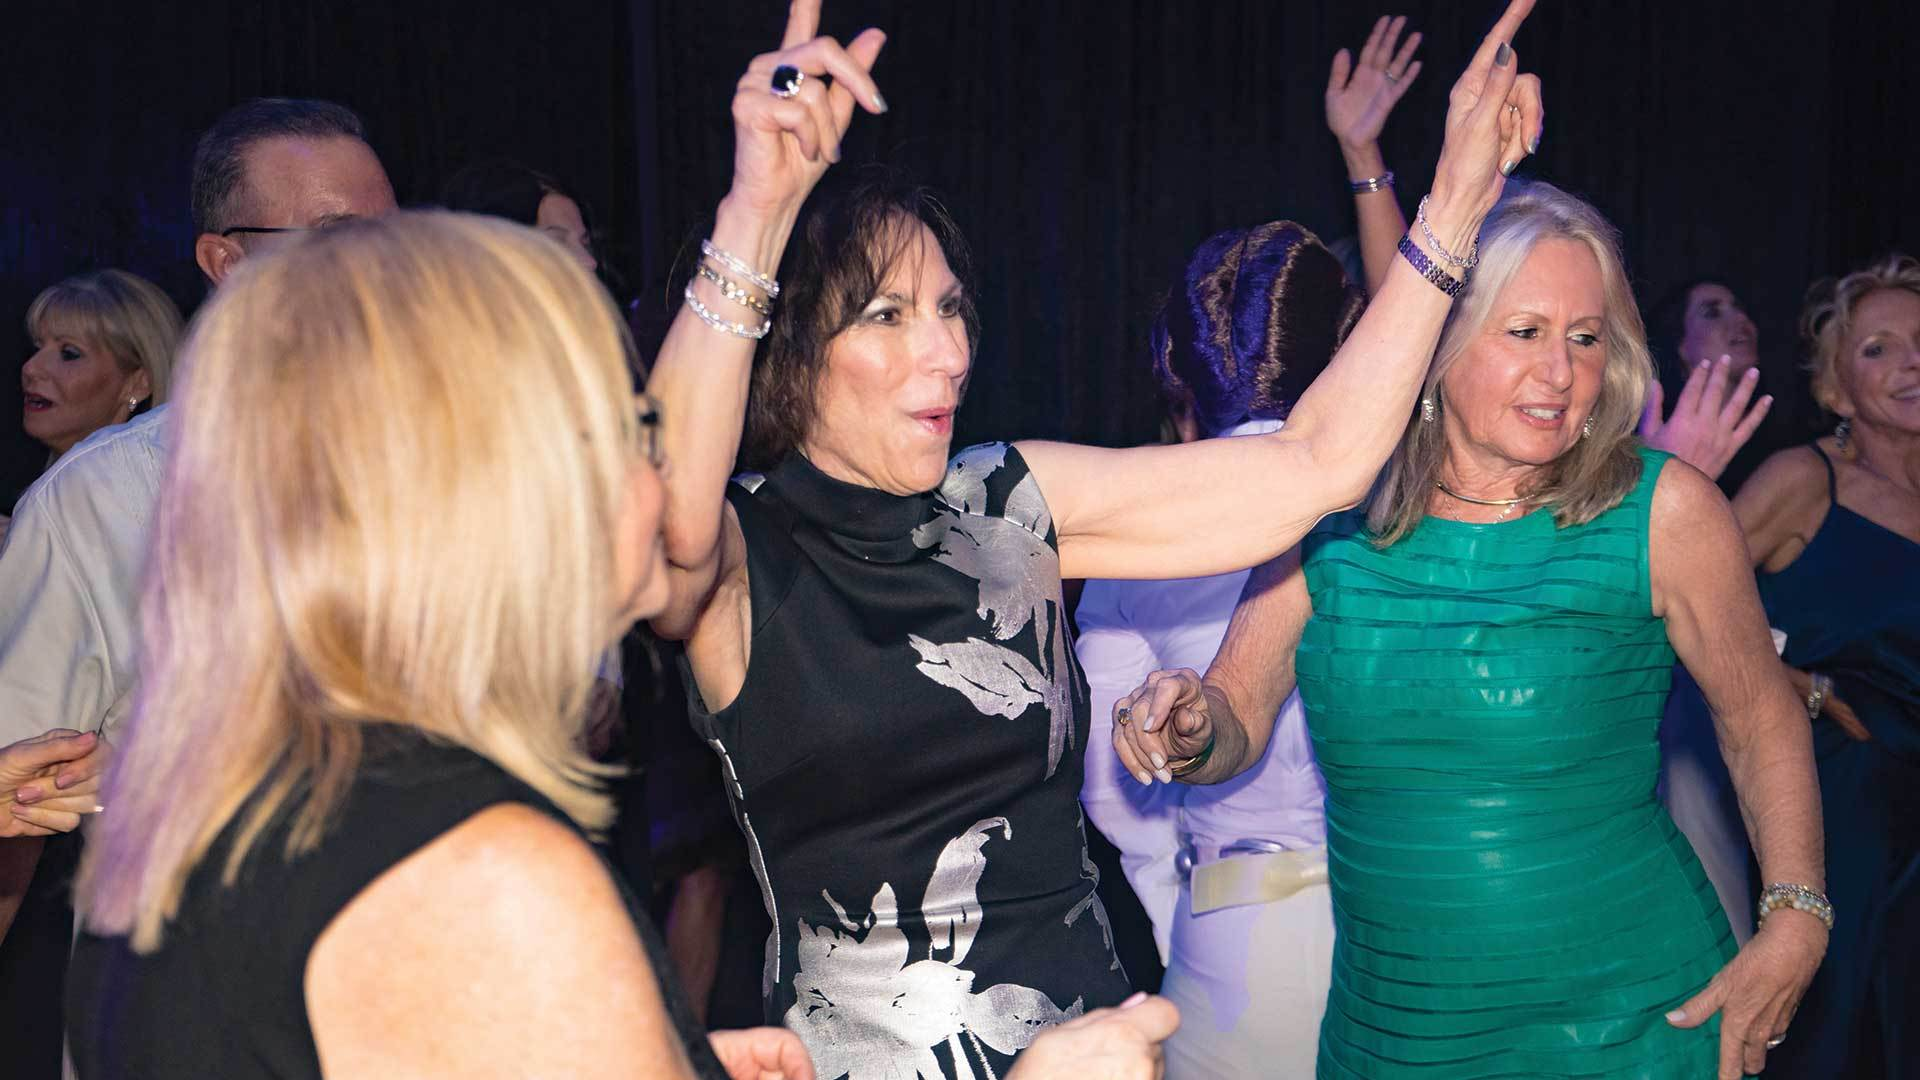 mizner-country-club-gallery-social-event-6